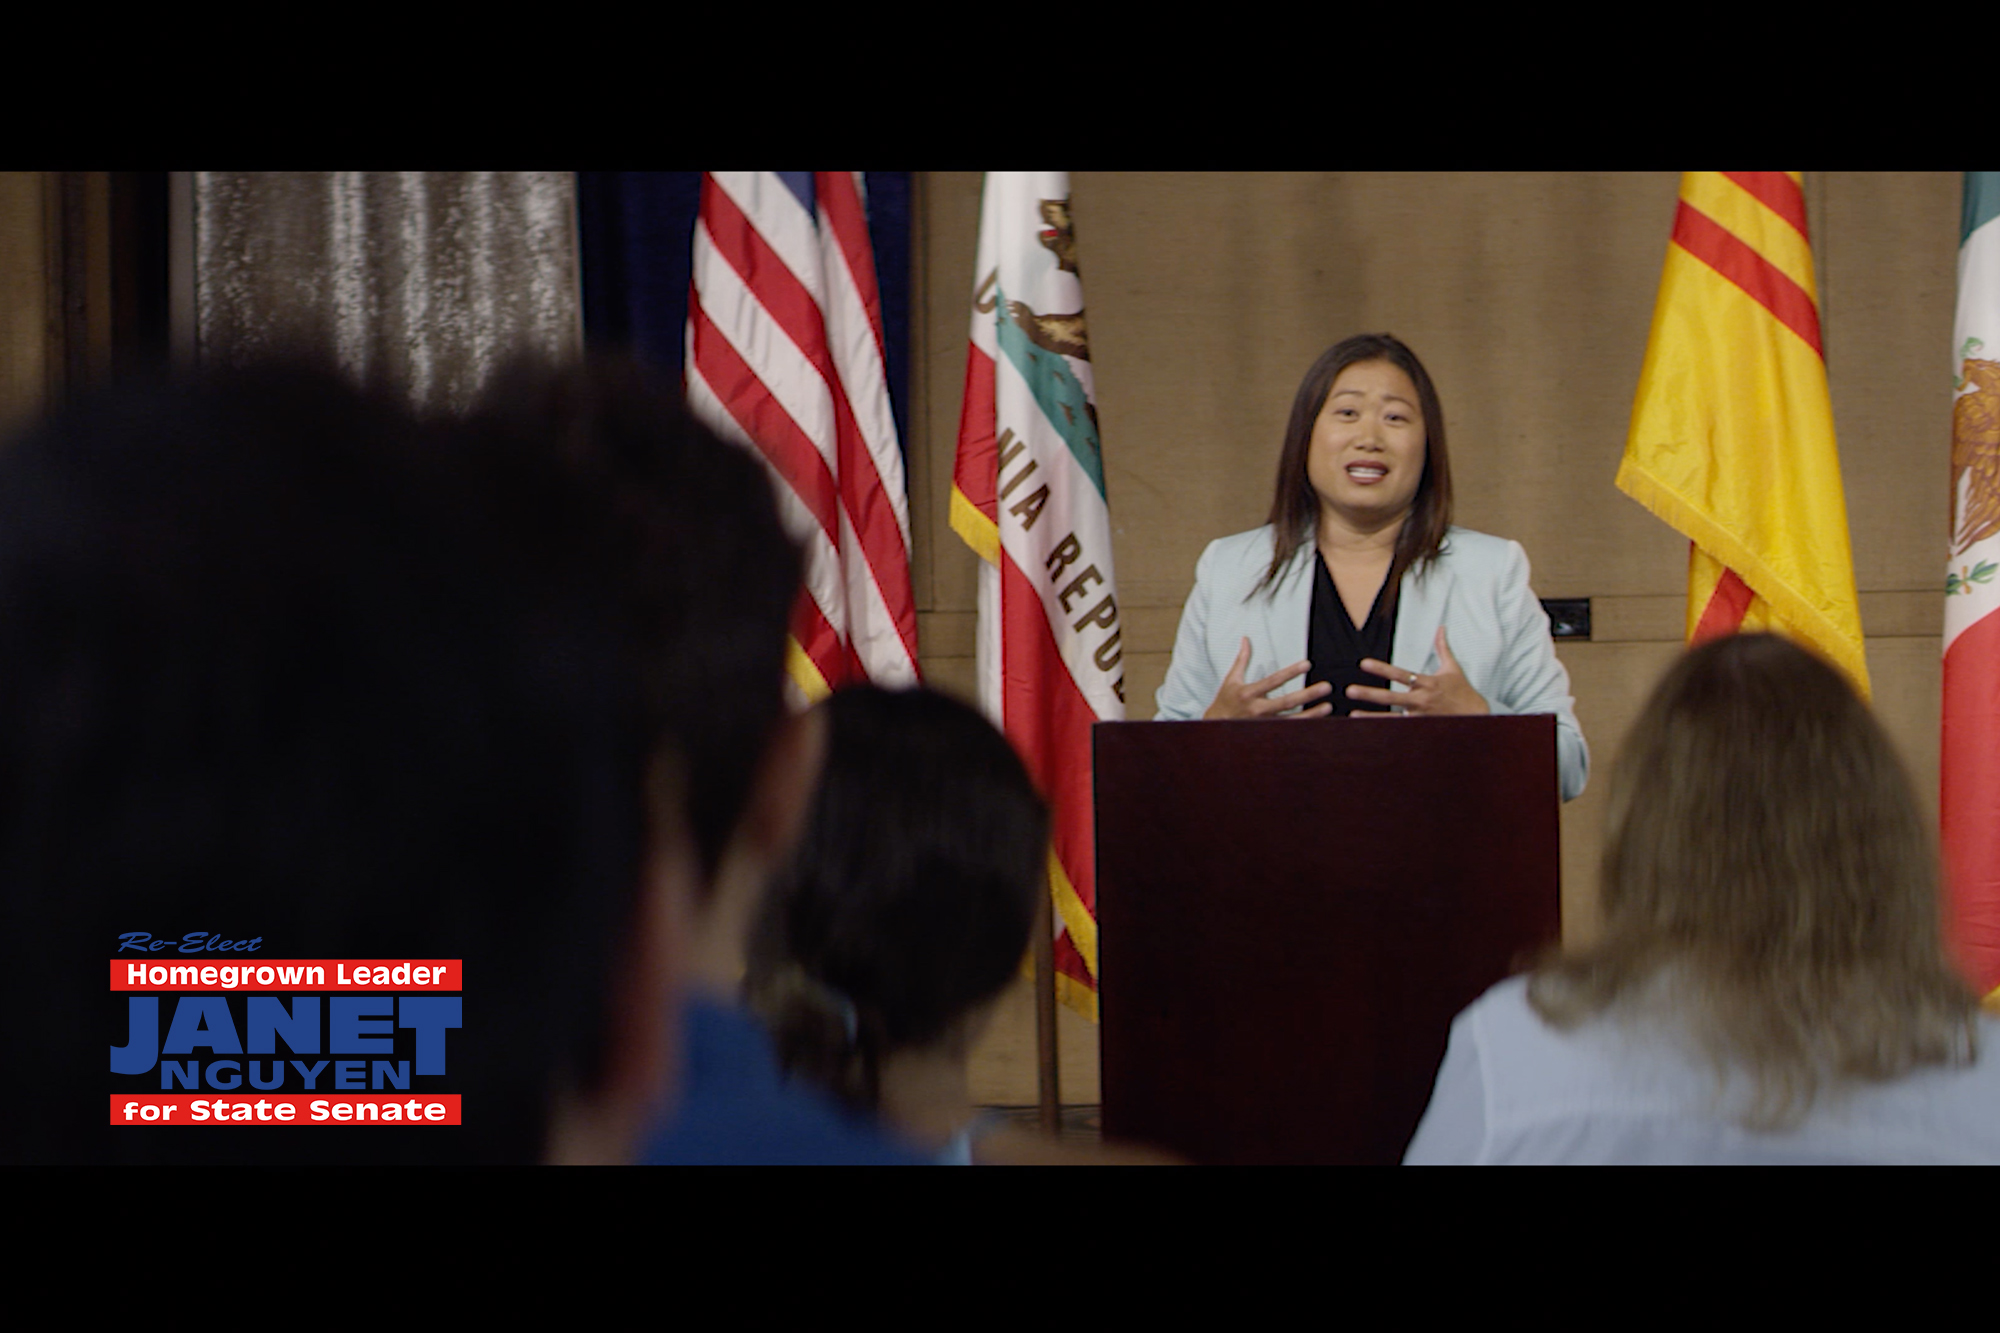 Janet Nguyen For Senate – Life Spot